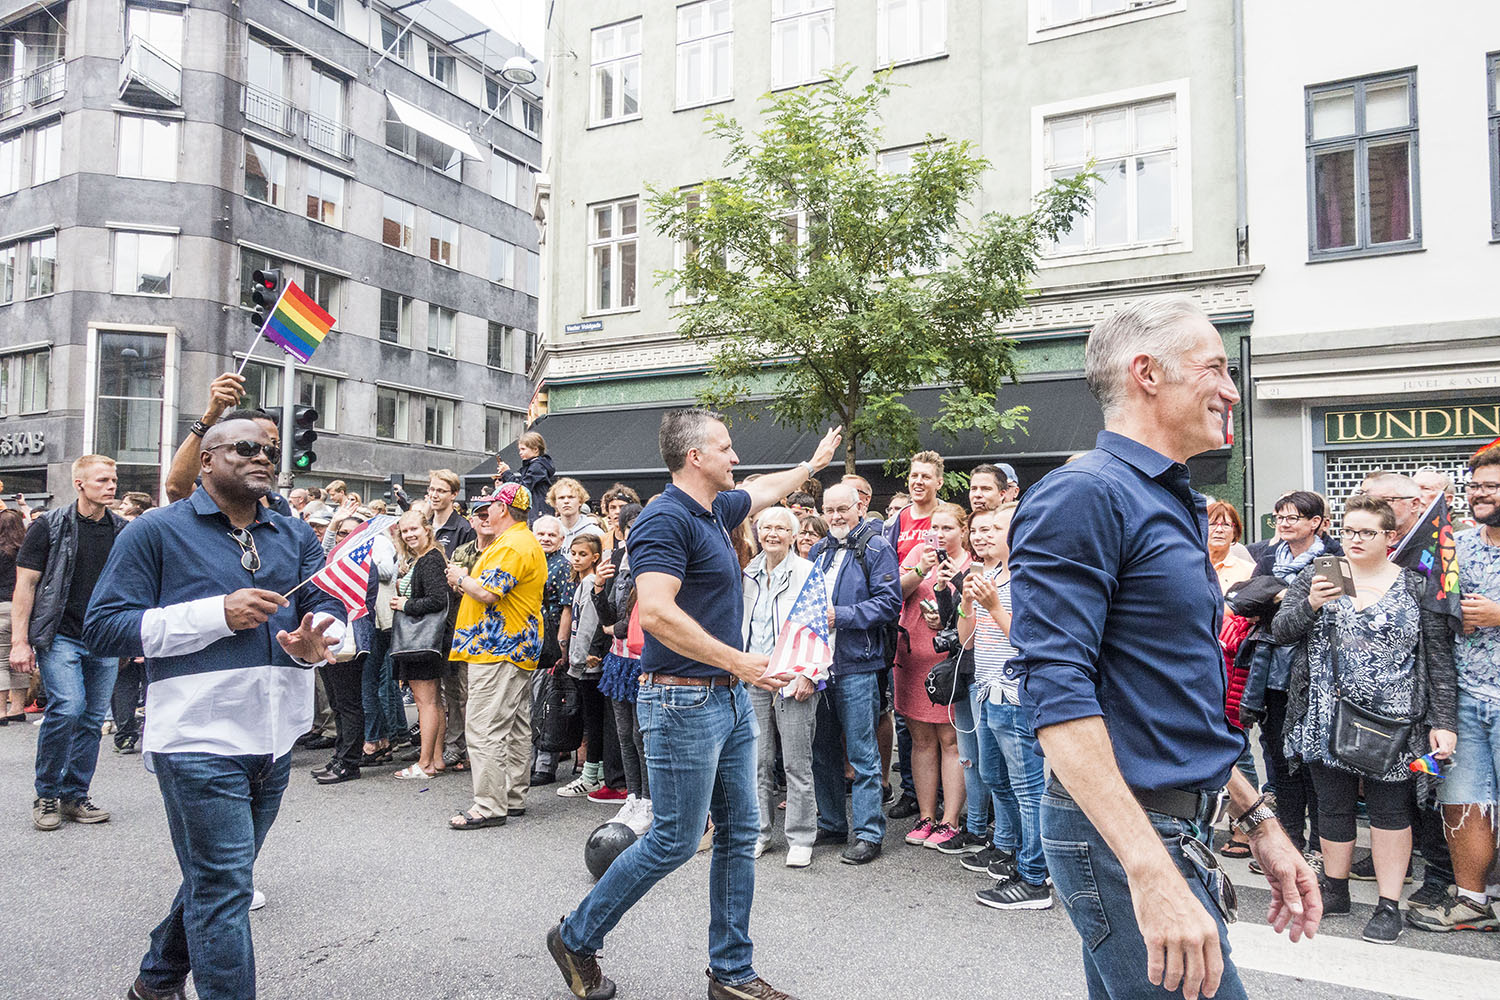 CphPride2016_HelenaLundquist_blog_15